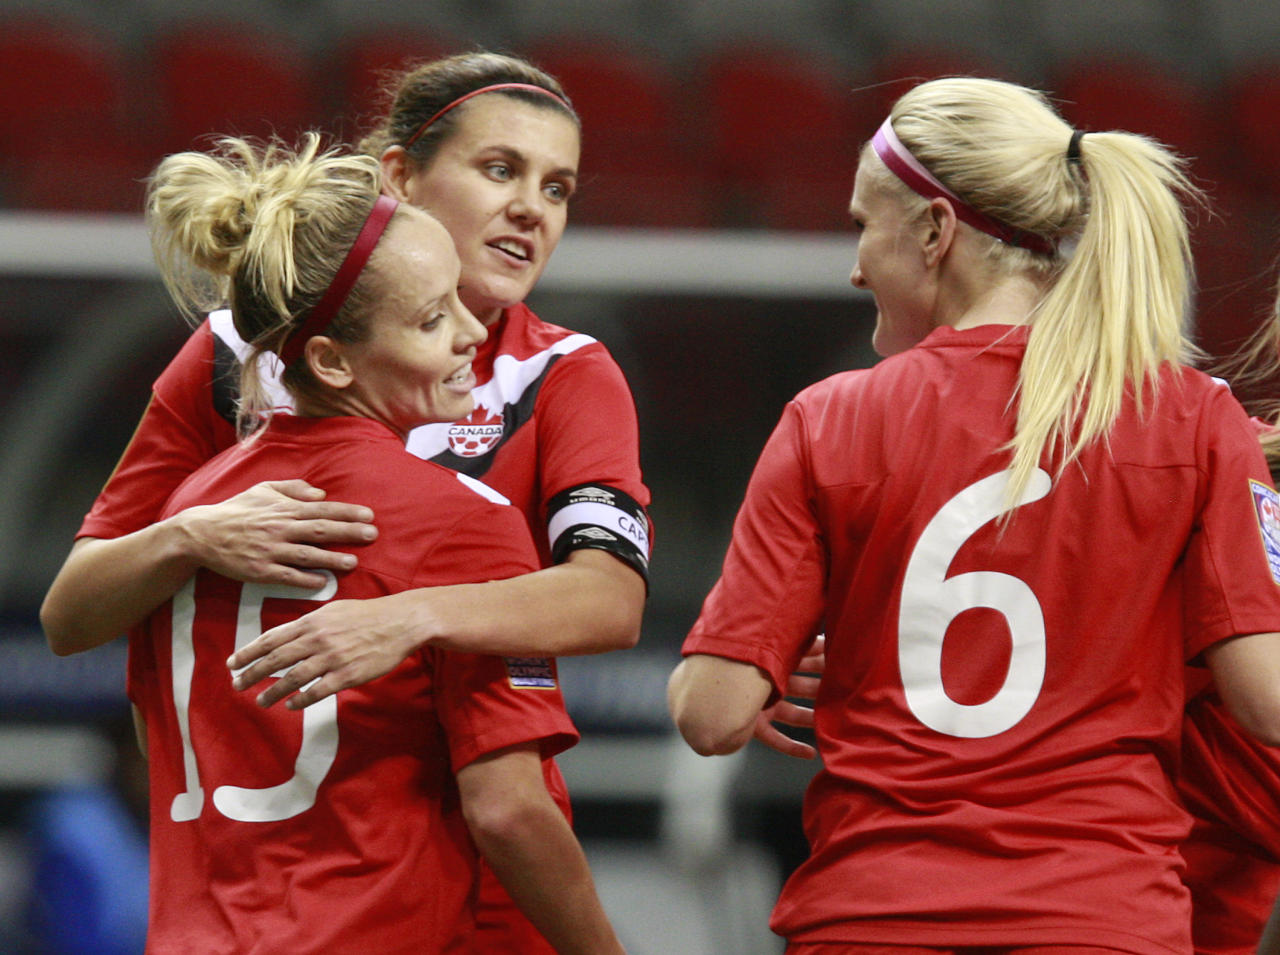 VANCOUVER, CANADA - JANUARY 19:  Christine Sinclair #12 and Kaylyn Kyle #6 of Canada congratulate goal scorer Kelly Parker #15 of Canada during a 6-0 win over Haiti to open the 2012 CONCACAF Women's Olympic Qualifying Tournament at BC Place on January 19, 2012 in Vancouver, British Columbia, Canada.  (Photo by Jeff Vinnick/Getty Images)